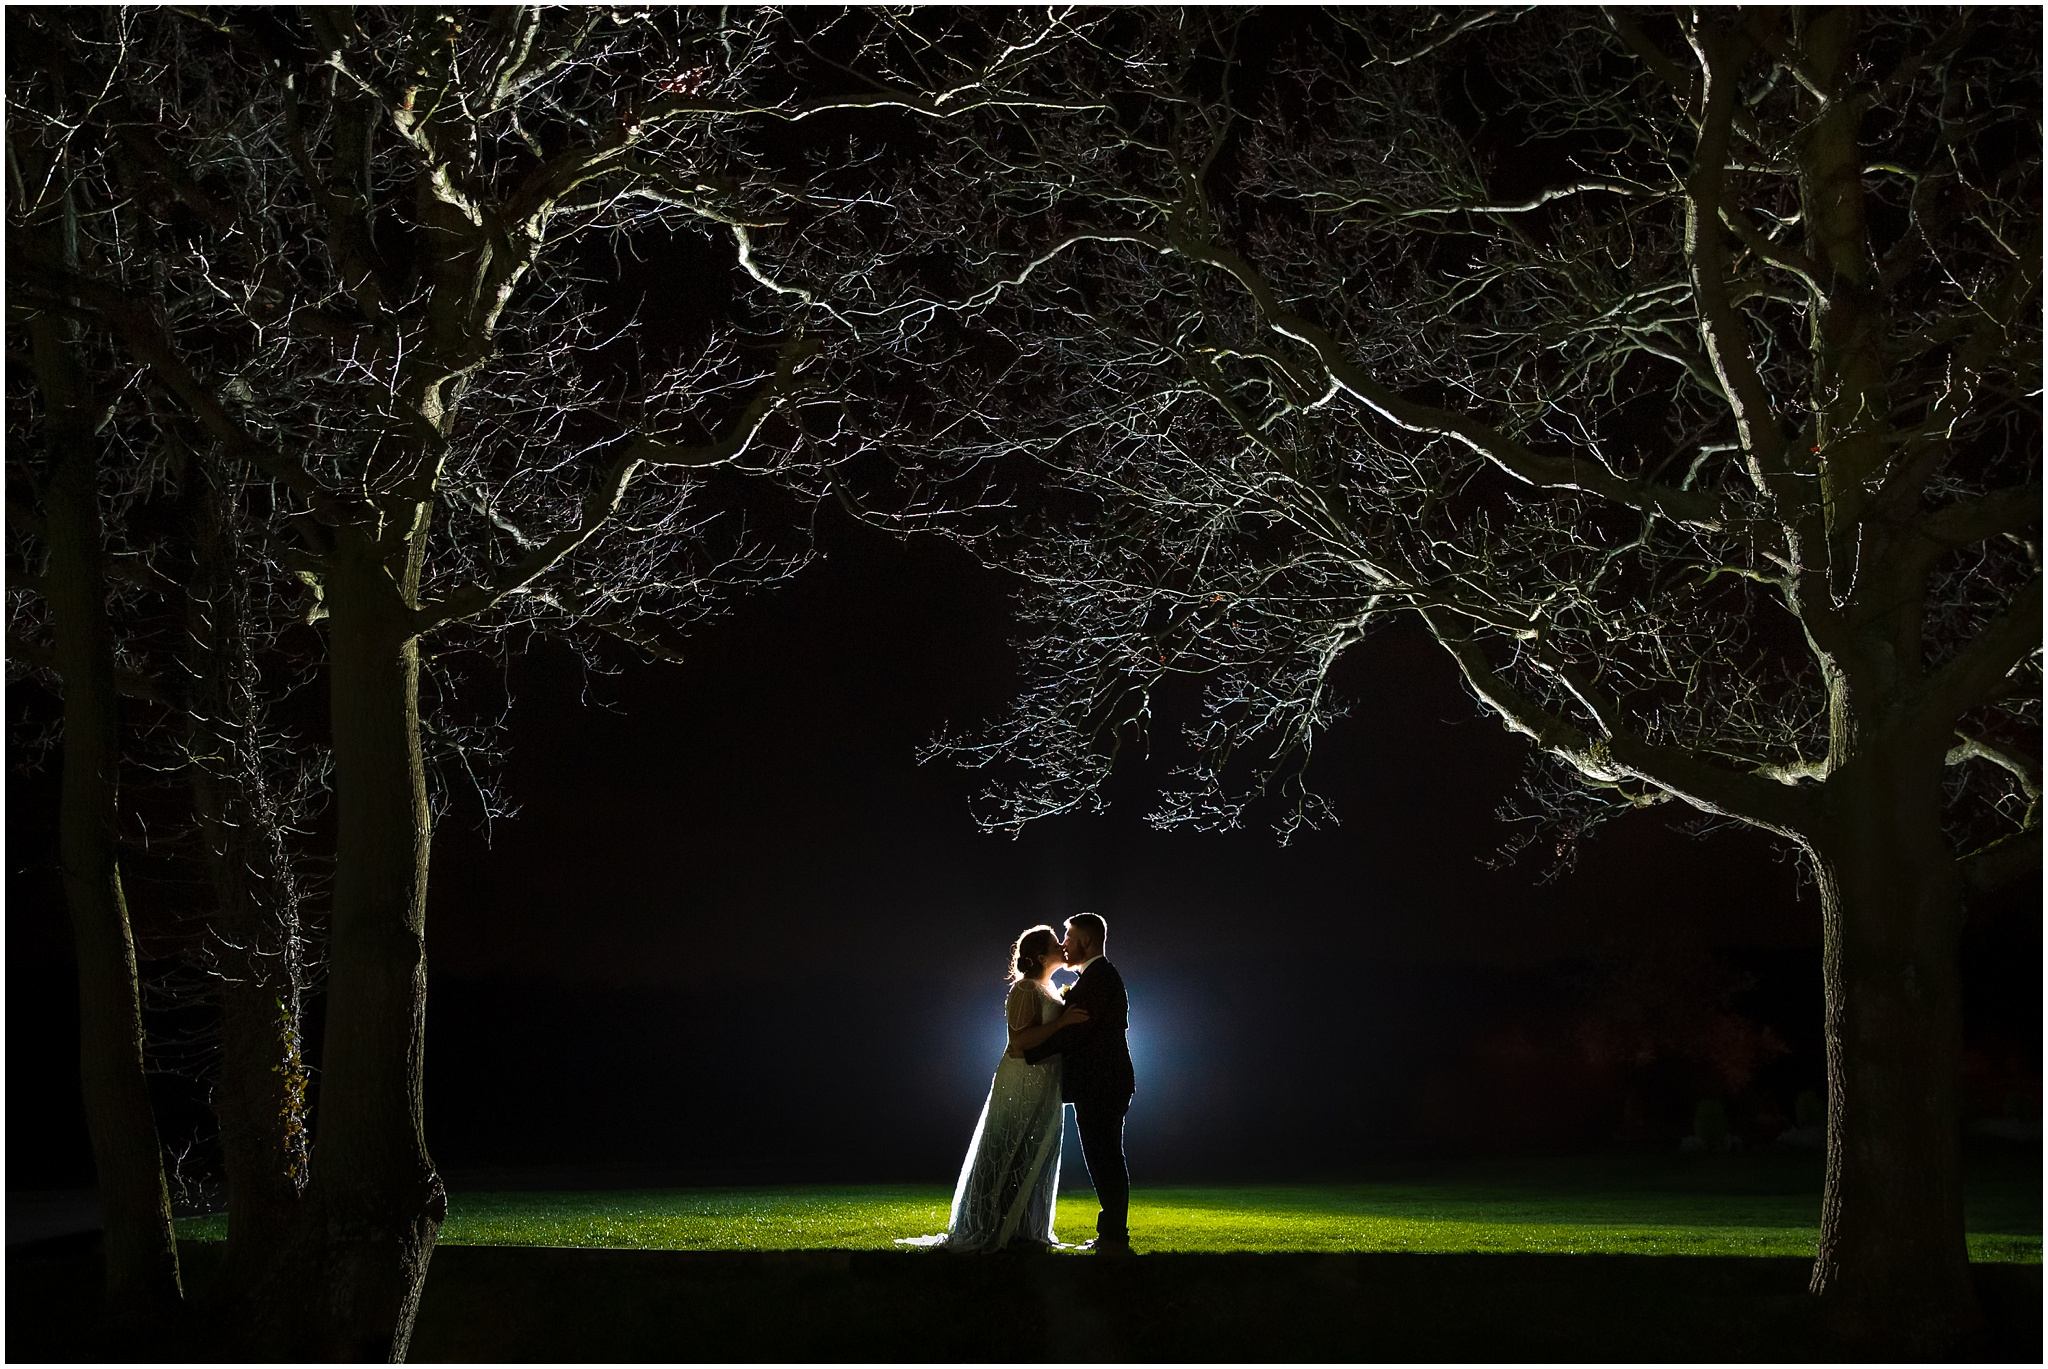 The bride and groom kiss during an evening shot next to 2 trees